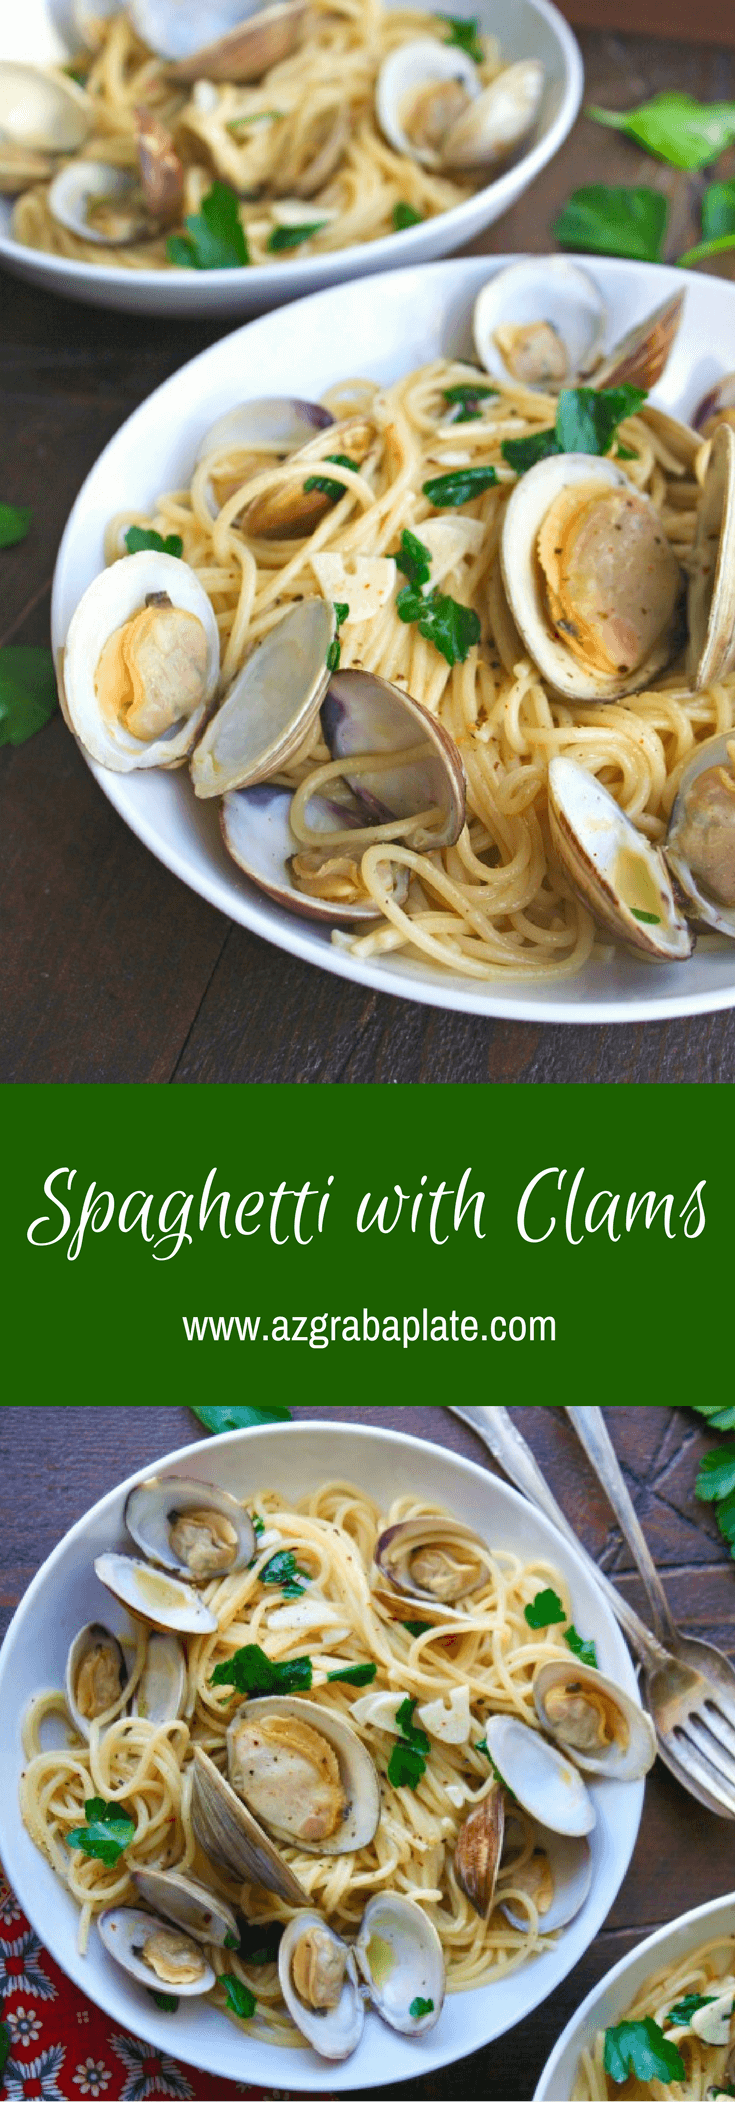 Spaghetti alle Vongole (Spaghetti with Clams) is a fabulous meal for a celebration!